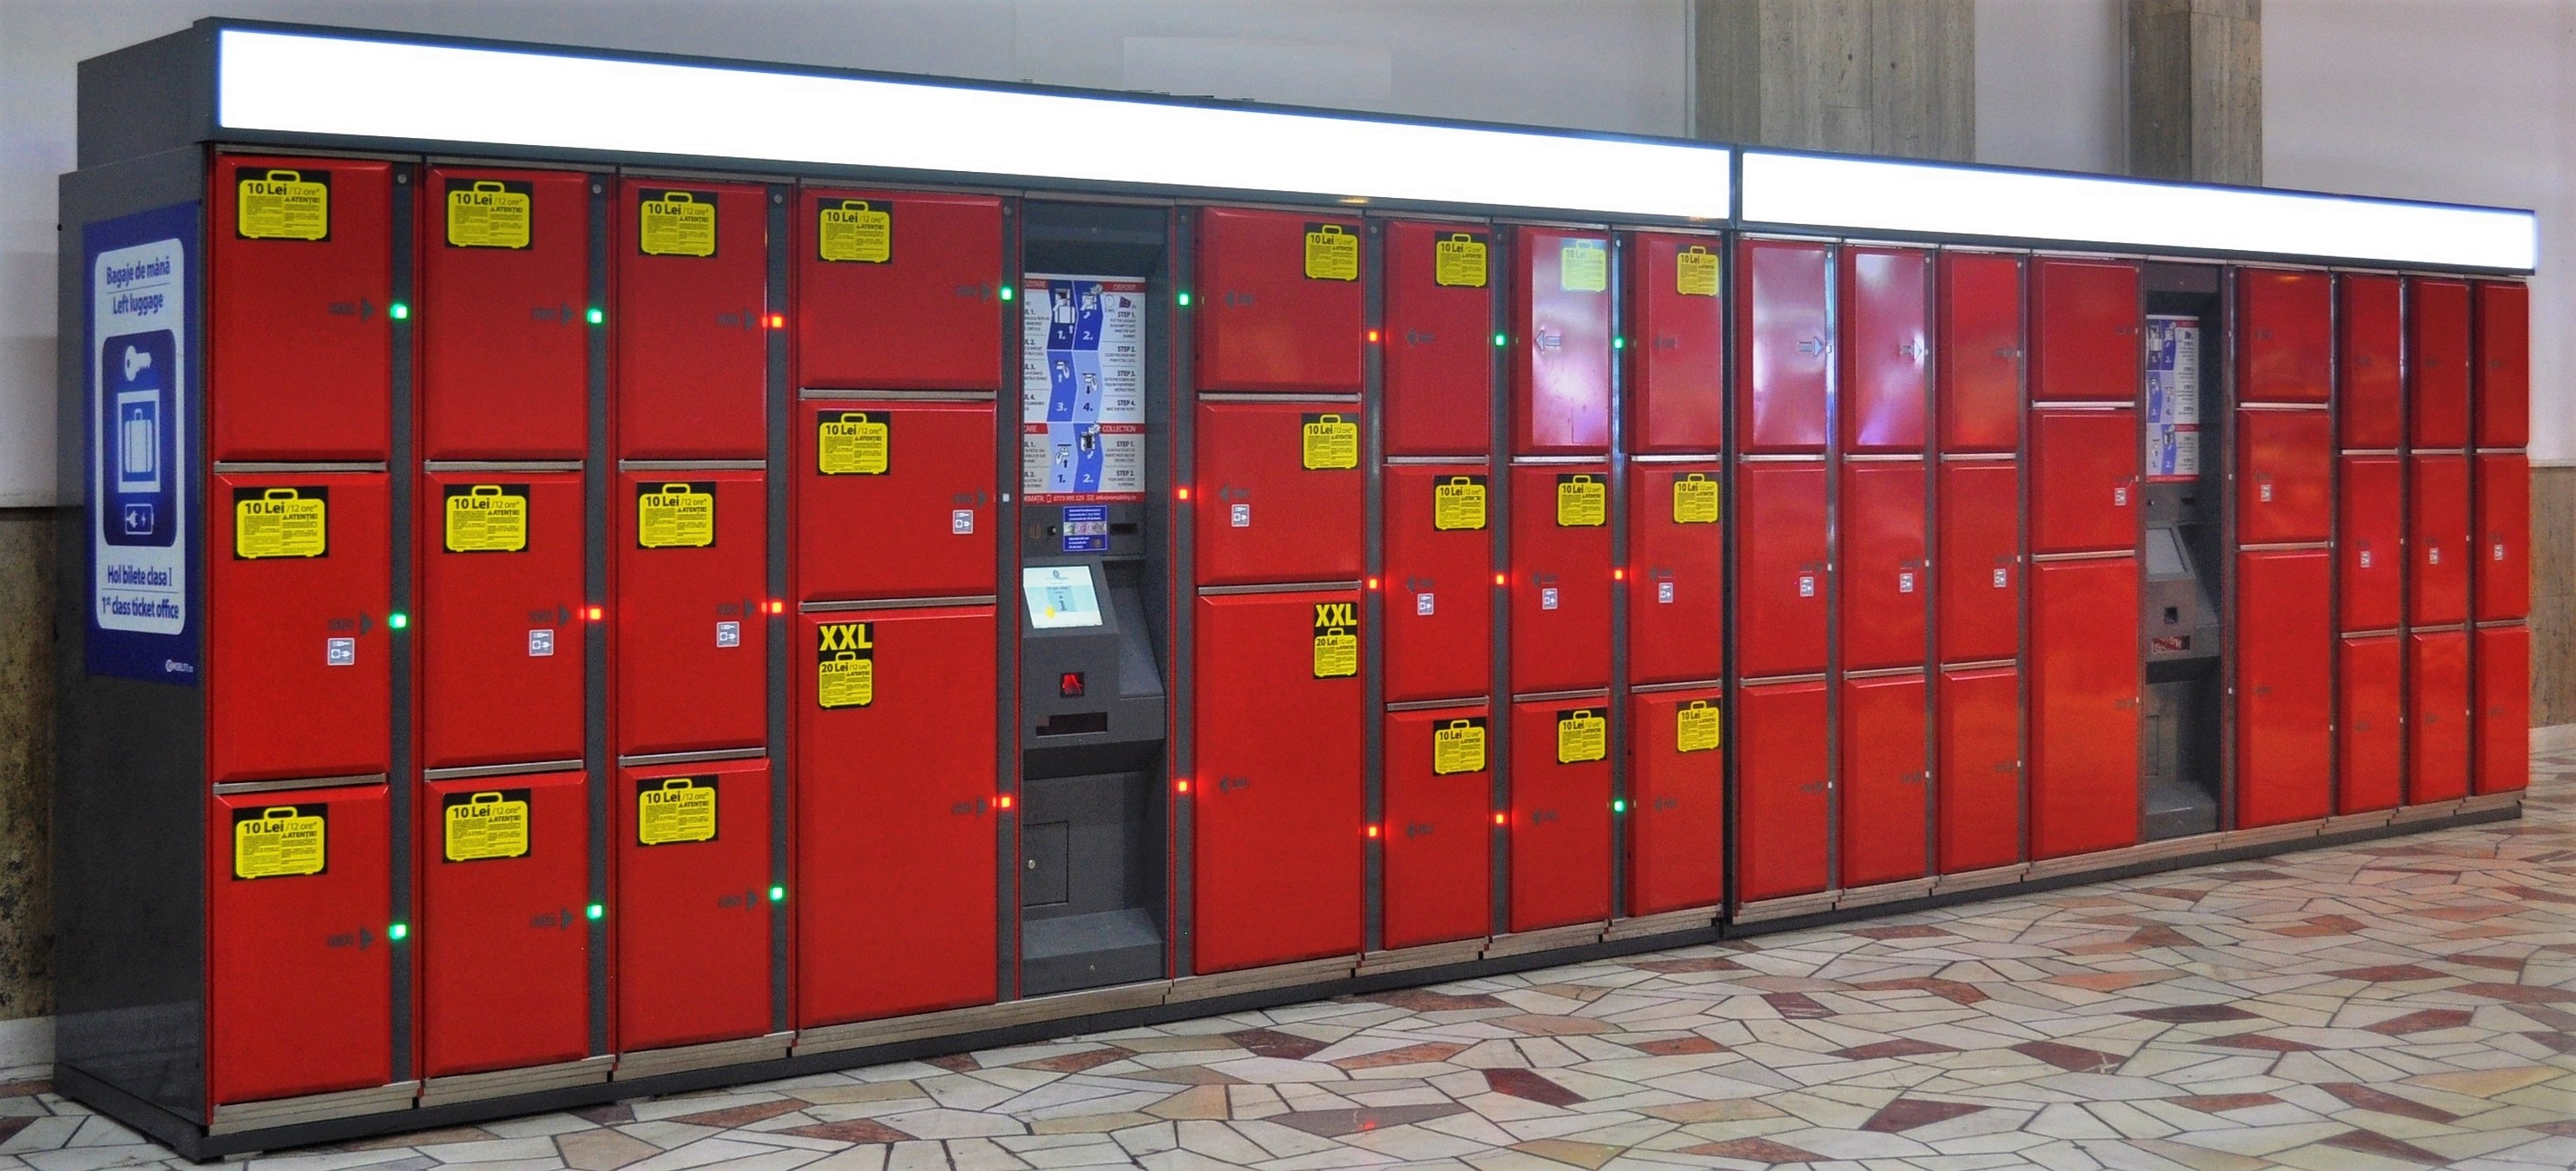 Smart lockers Locksafe5 – keyless lockers: two locker cabinets with various compartment sizes and two user stations.